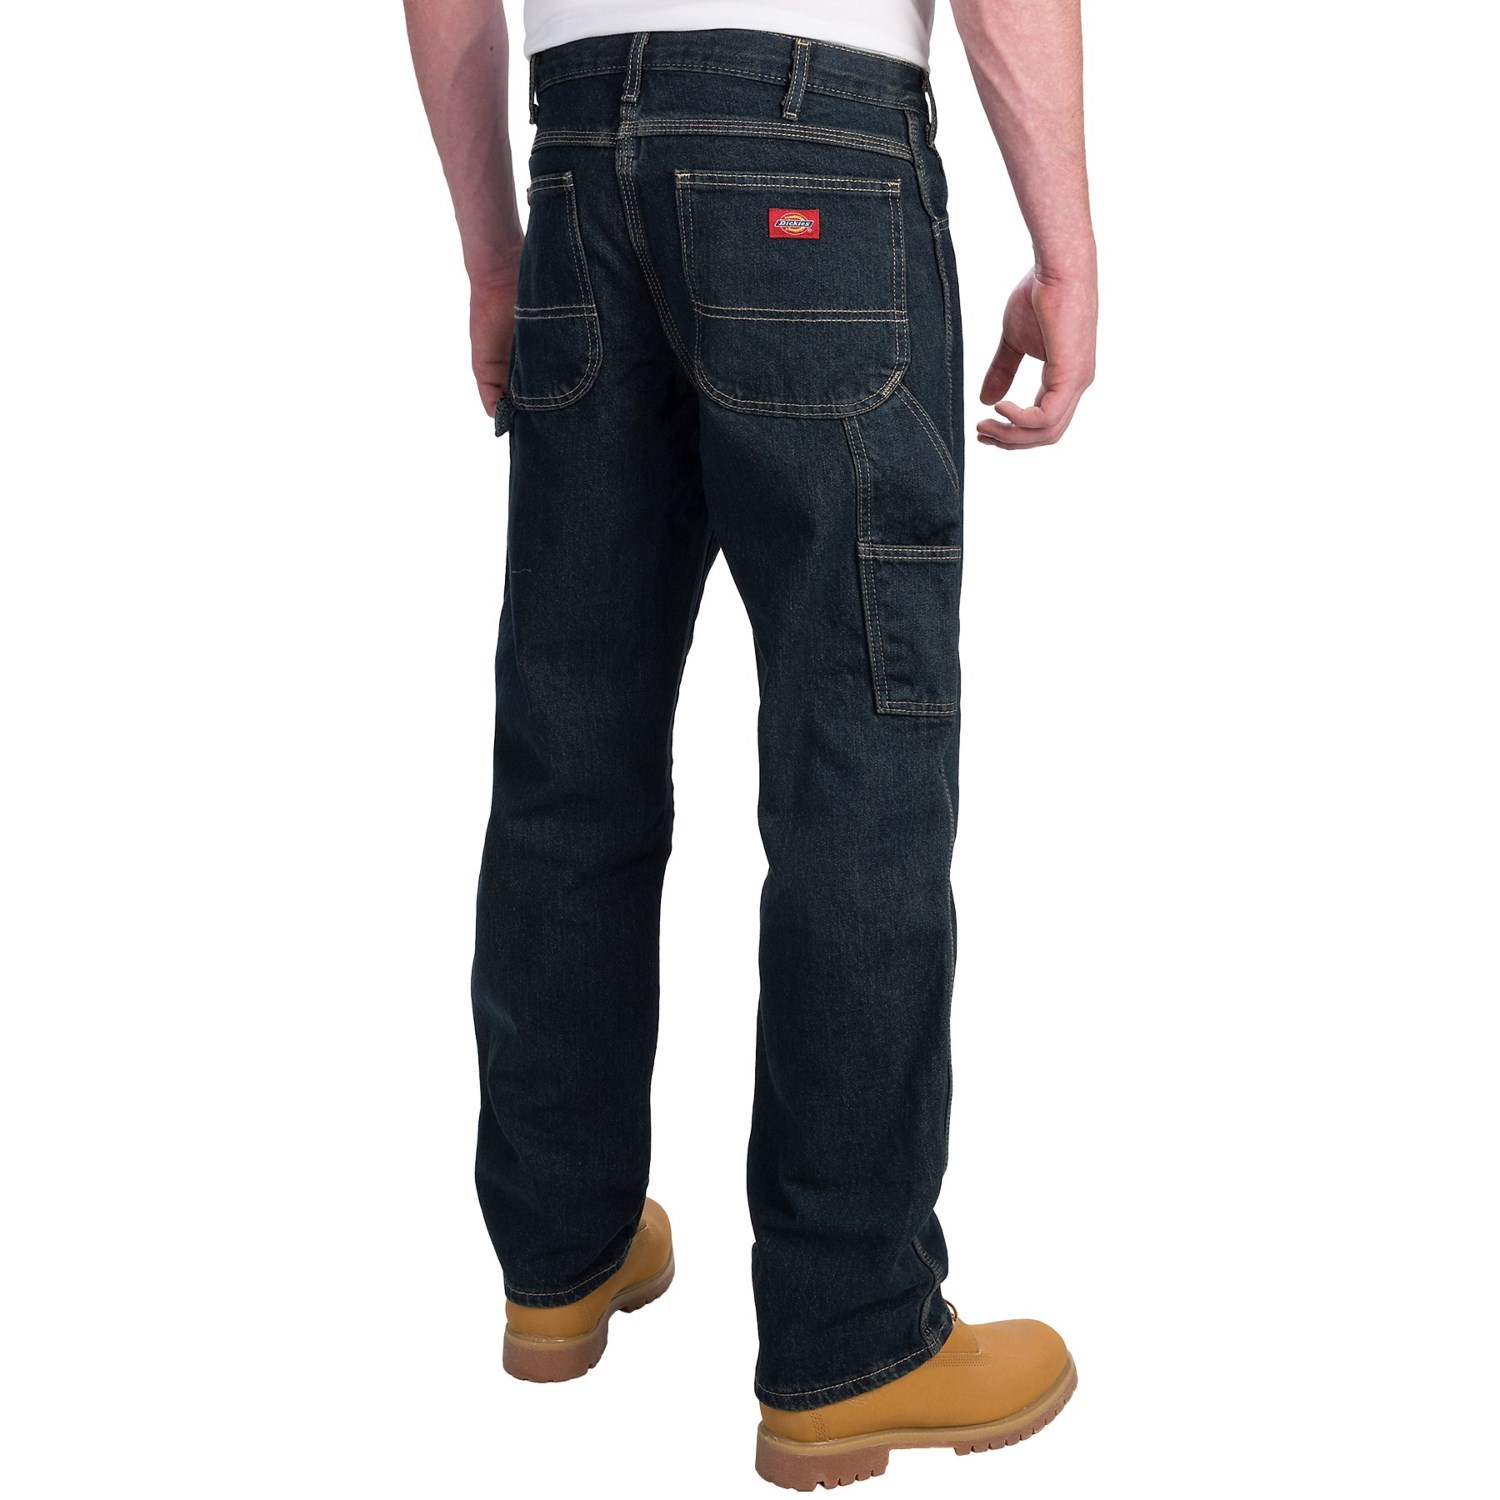 Make soft dickies jeans for girls teen sex pic